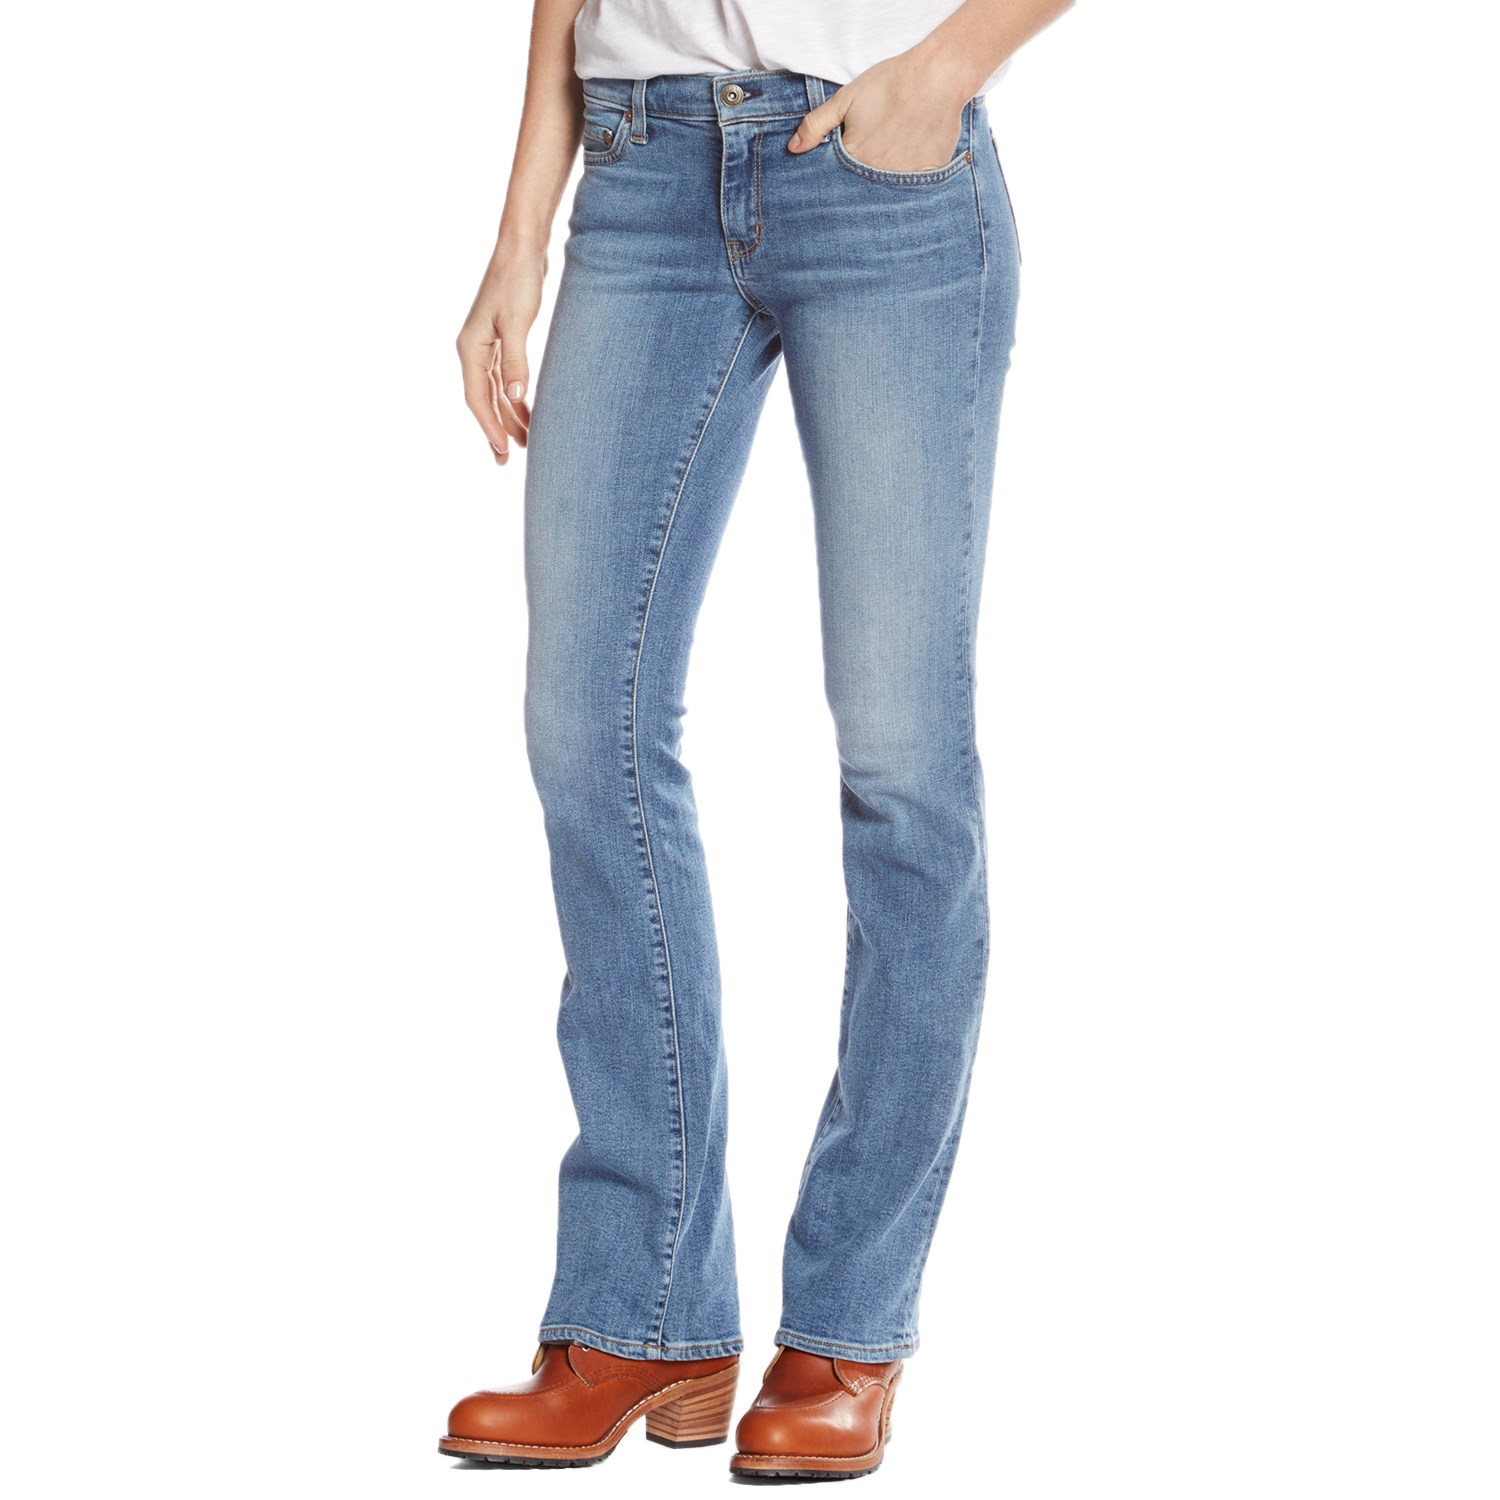 Principle Denim The Truth Bootcut Jeans - Women's | evo